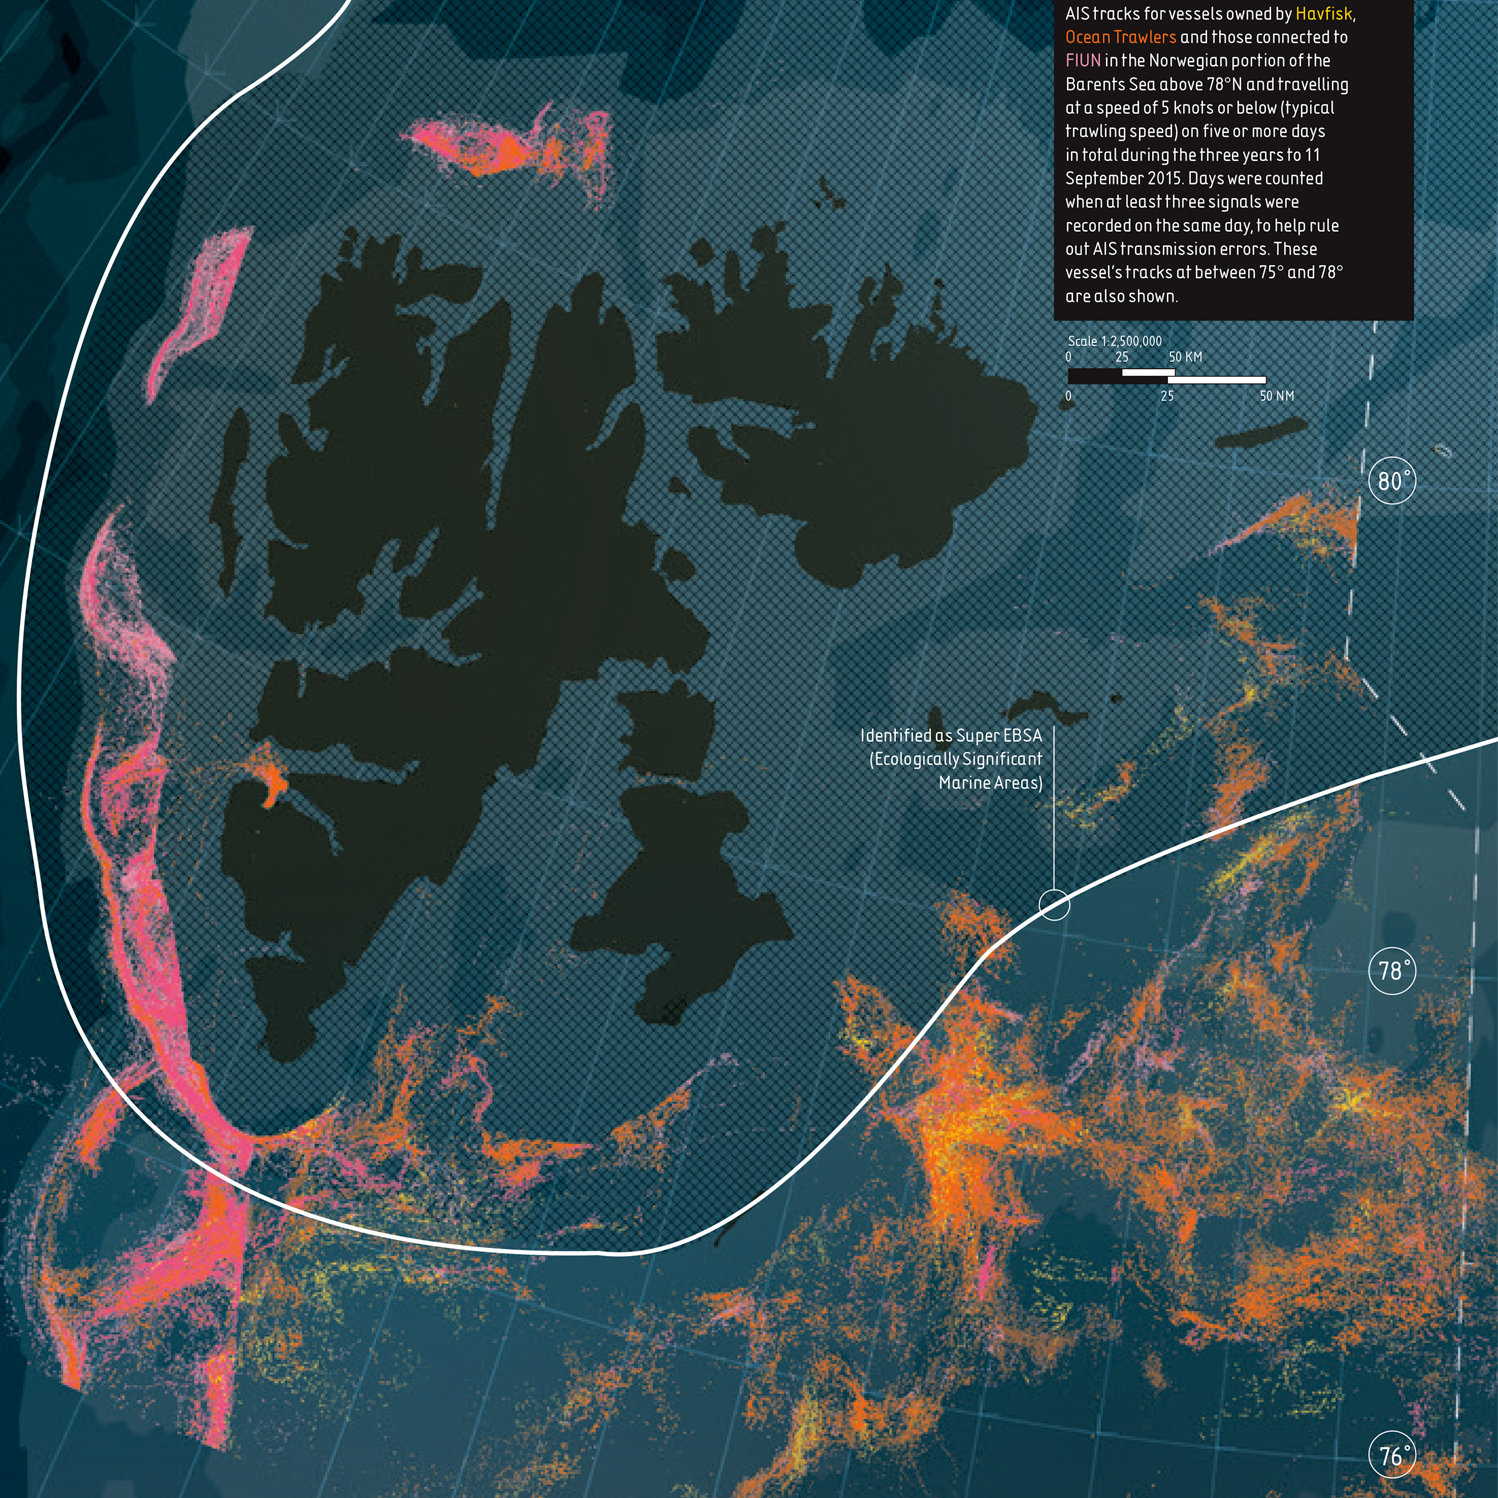 Map_Big-Data_Greenpeace_Svalbard_Fishing-Boat-Locations.png